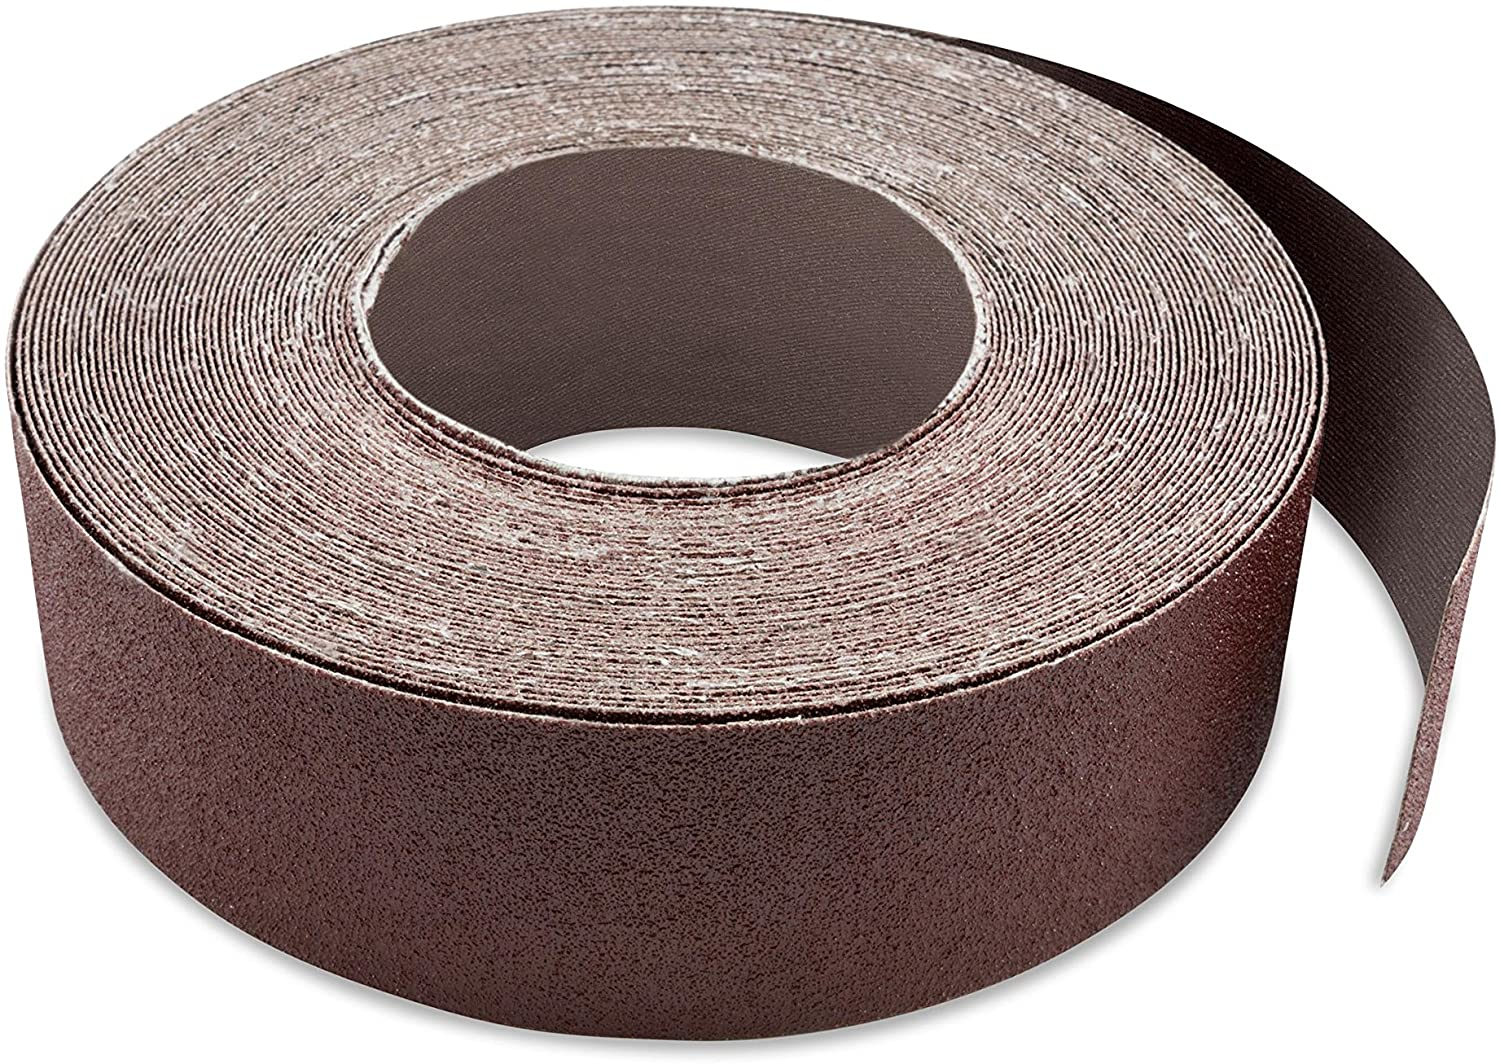 Red Label Abrasives 3 1/8 Inch X 70 FT 80 Grit Woodworking Drum Sander Strip Roll, Cut to Length